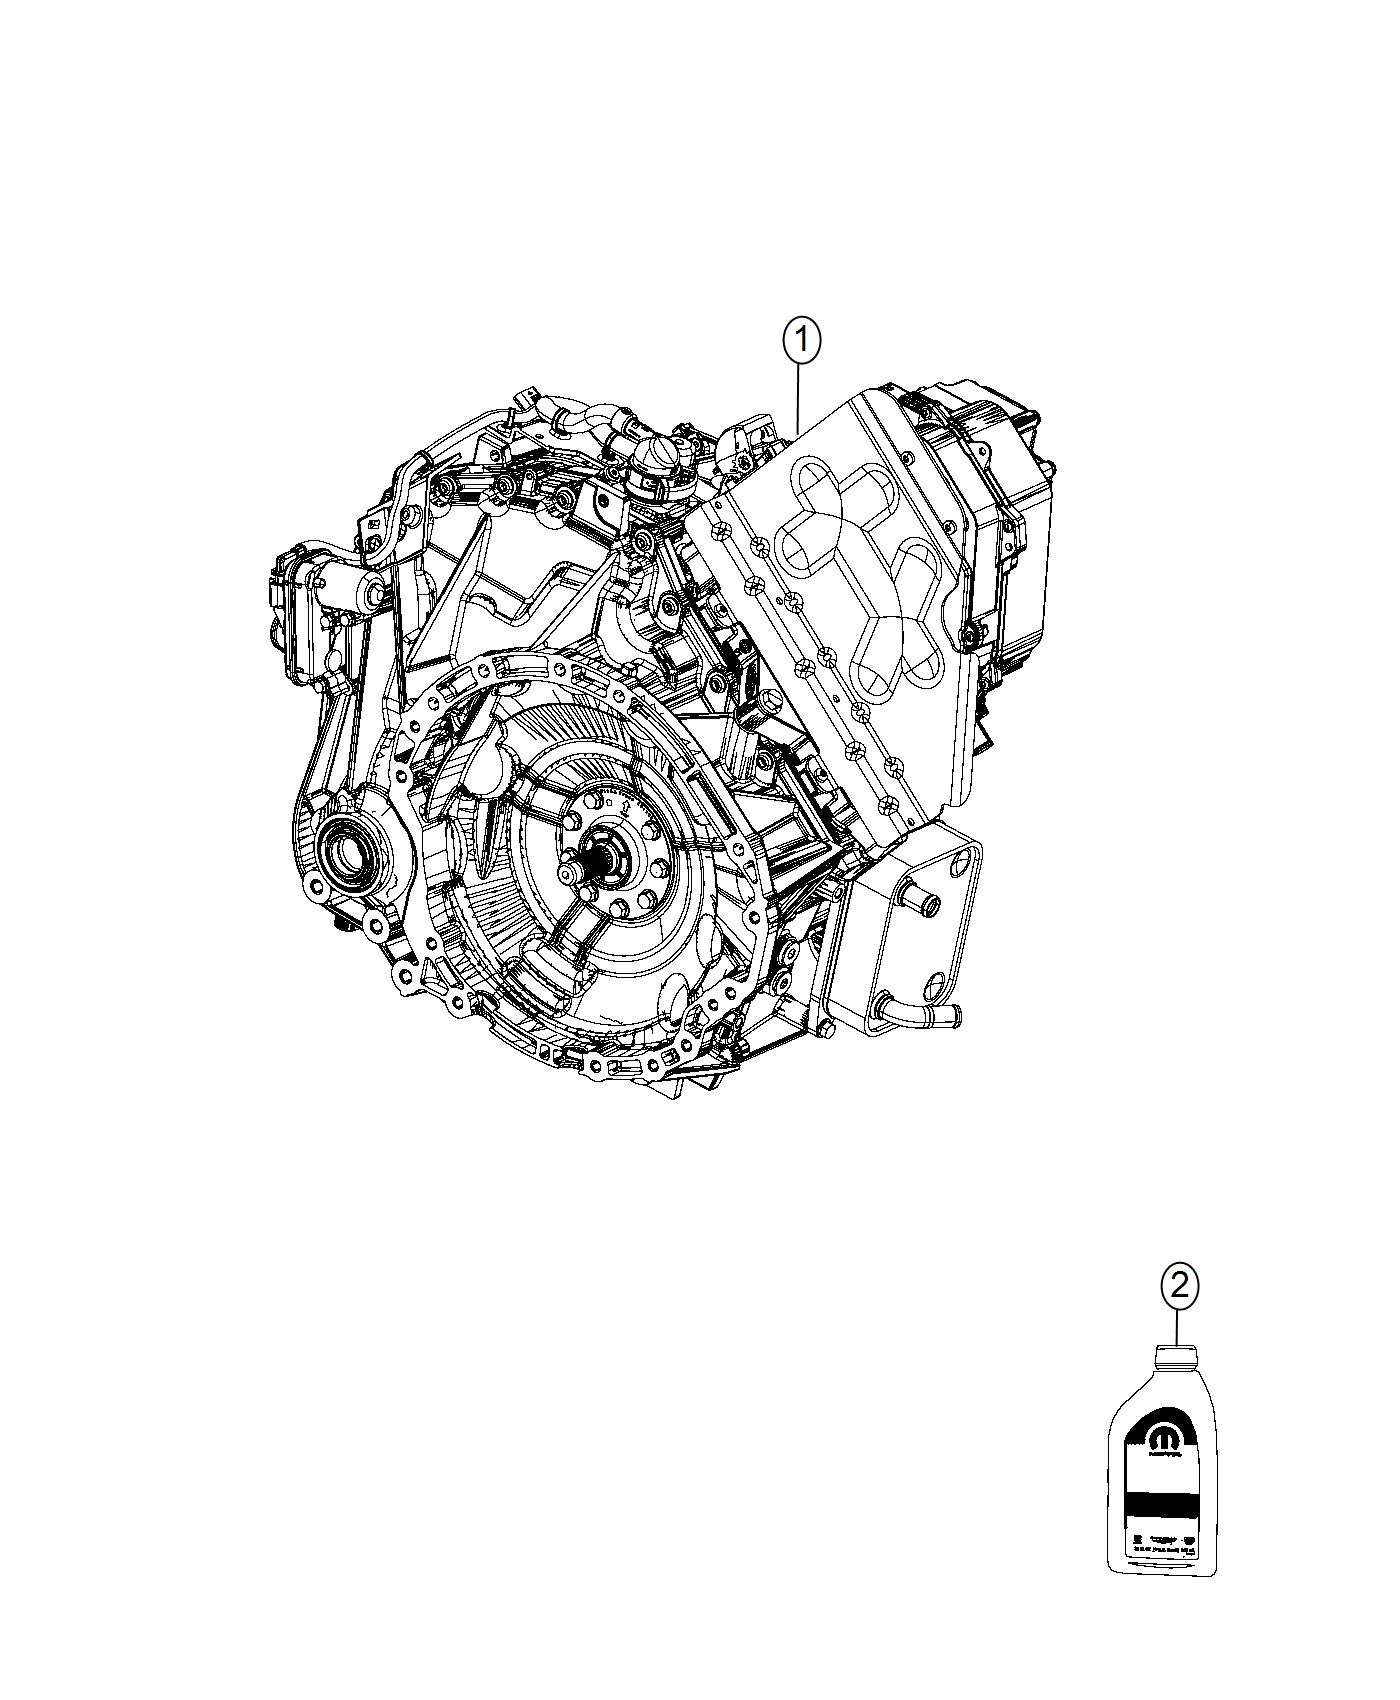 Diagram Transmission / Transaxle Assembly. for your 2018 Chrysler Pacifica LX